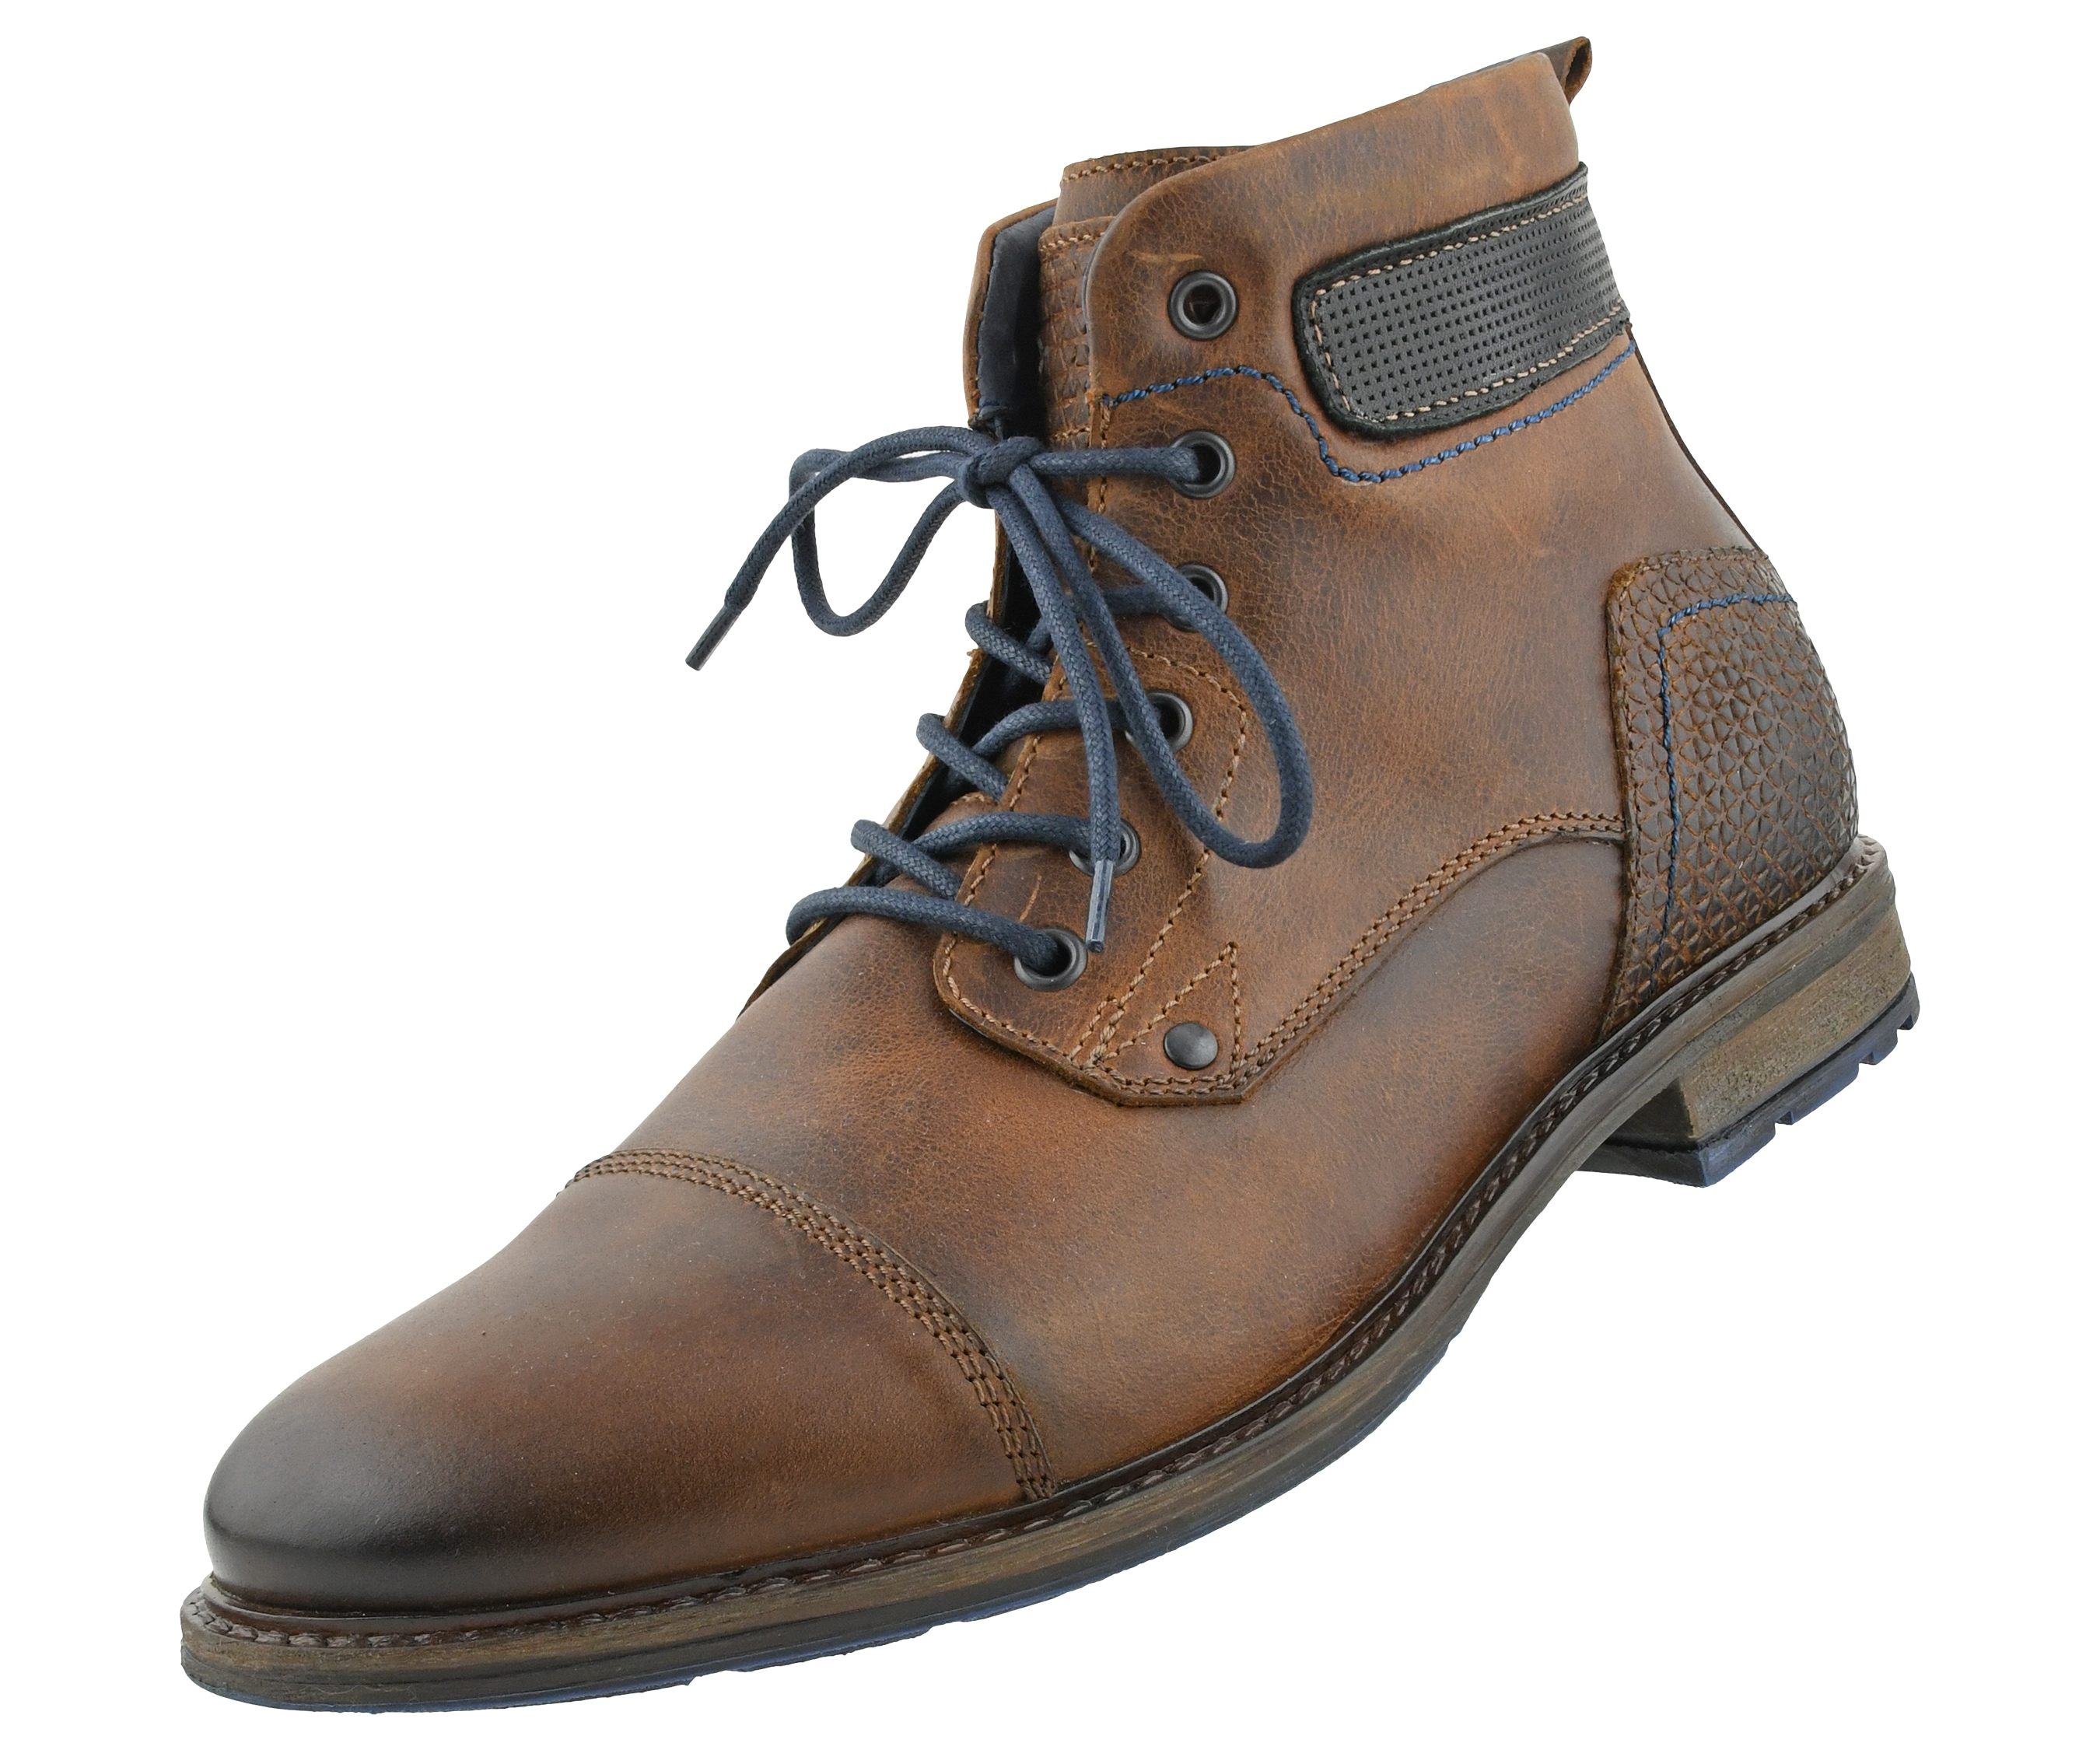 Asher Green - Asher Green AG8865 - Mens Work Boots, Motorcycle Boots,  Combat Boots - Casual Designer Boots for Men - Modern Cap Toe Lace-Up  Leather Boots - Walmart.com - Walmart.com